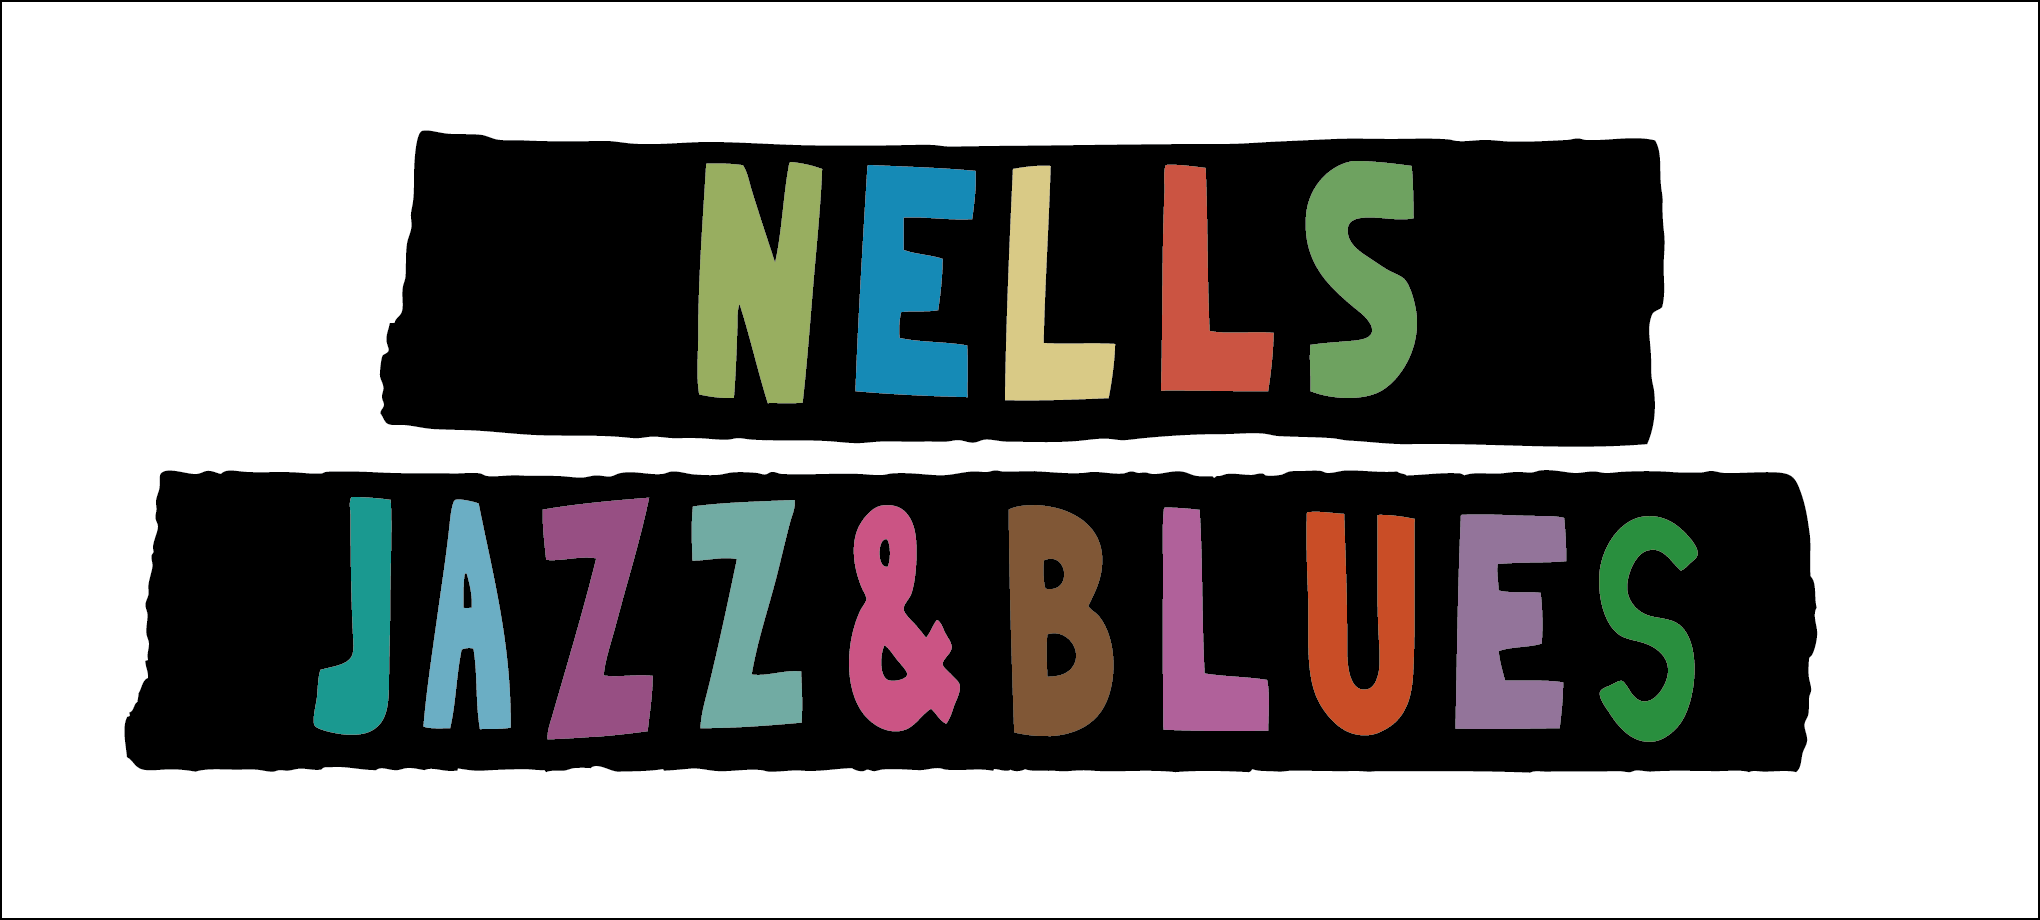 jazz and blues 2018 utah blues festival in salt lake city on june 16, 2018 featuring shemekia copeland, ana popovic, rick estrin & the nightcats, danielle nicole, christone kingfish ingram, tony holiday, sarah degraw and so much more.